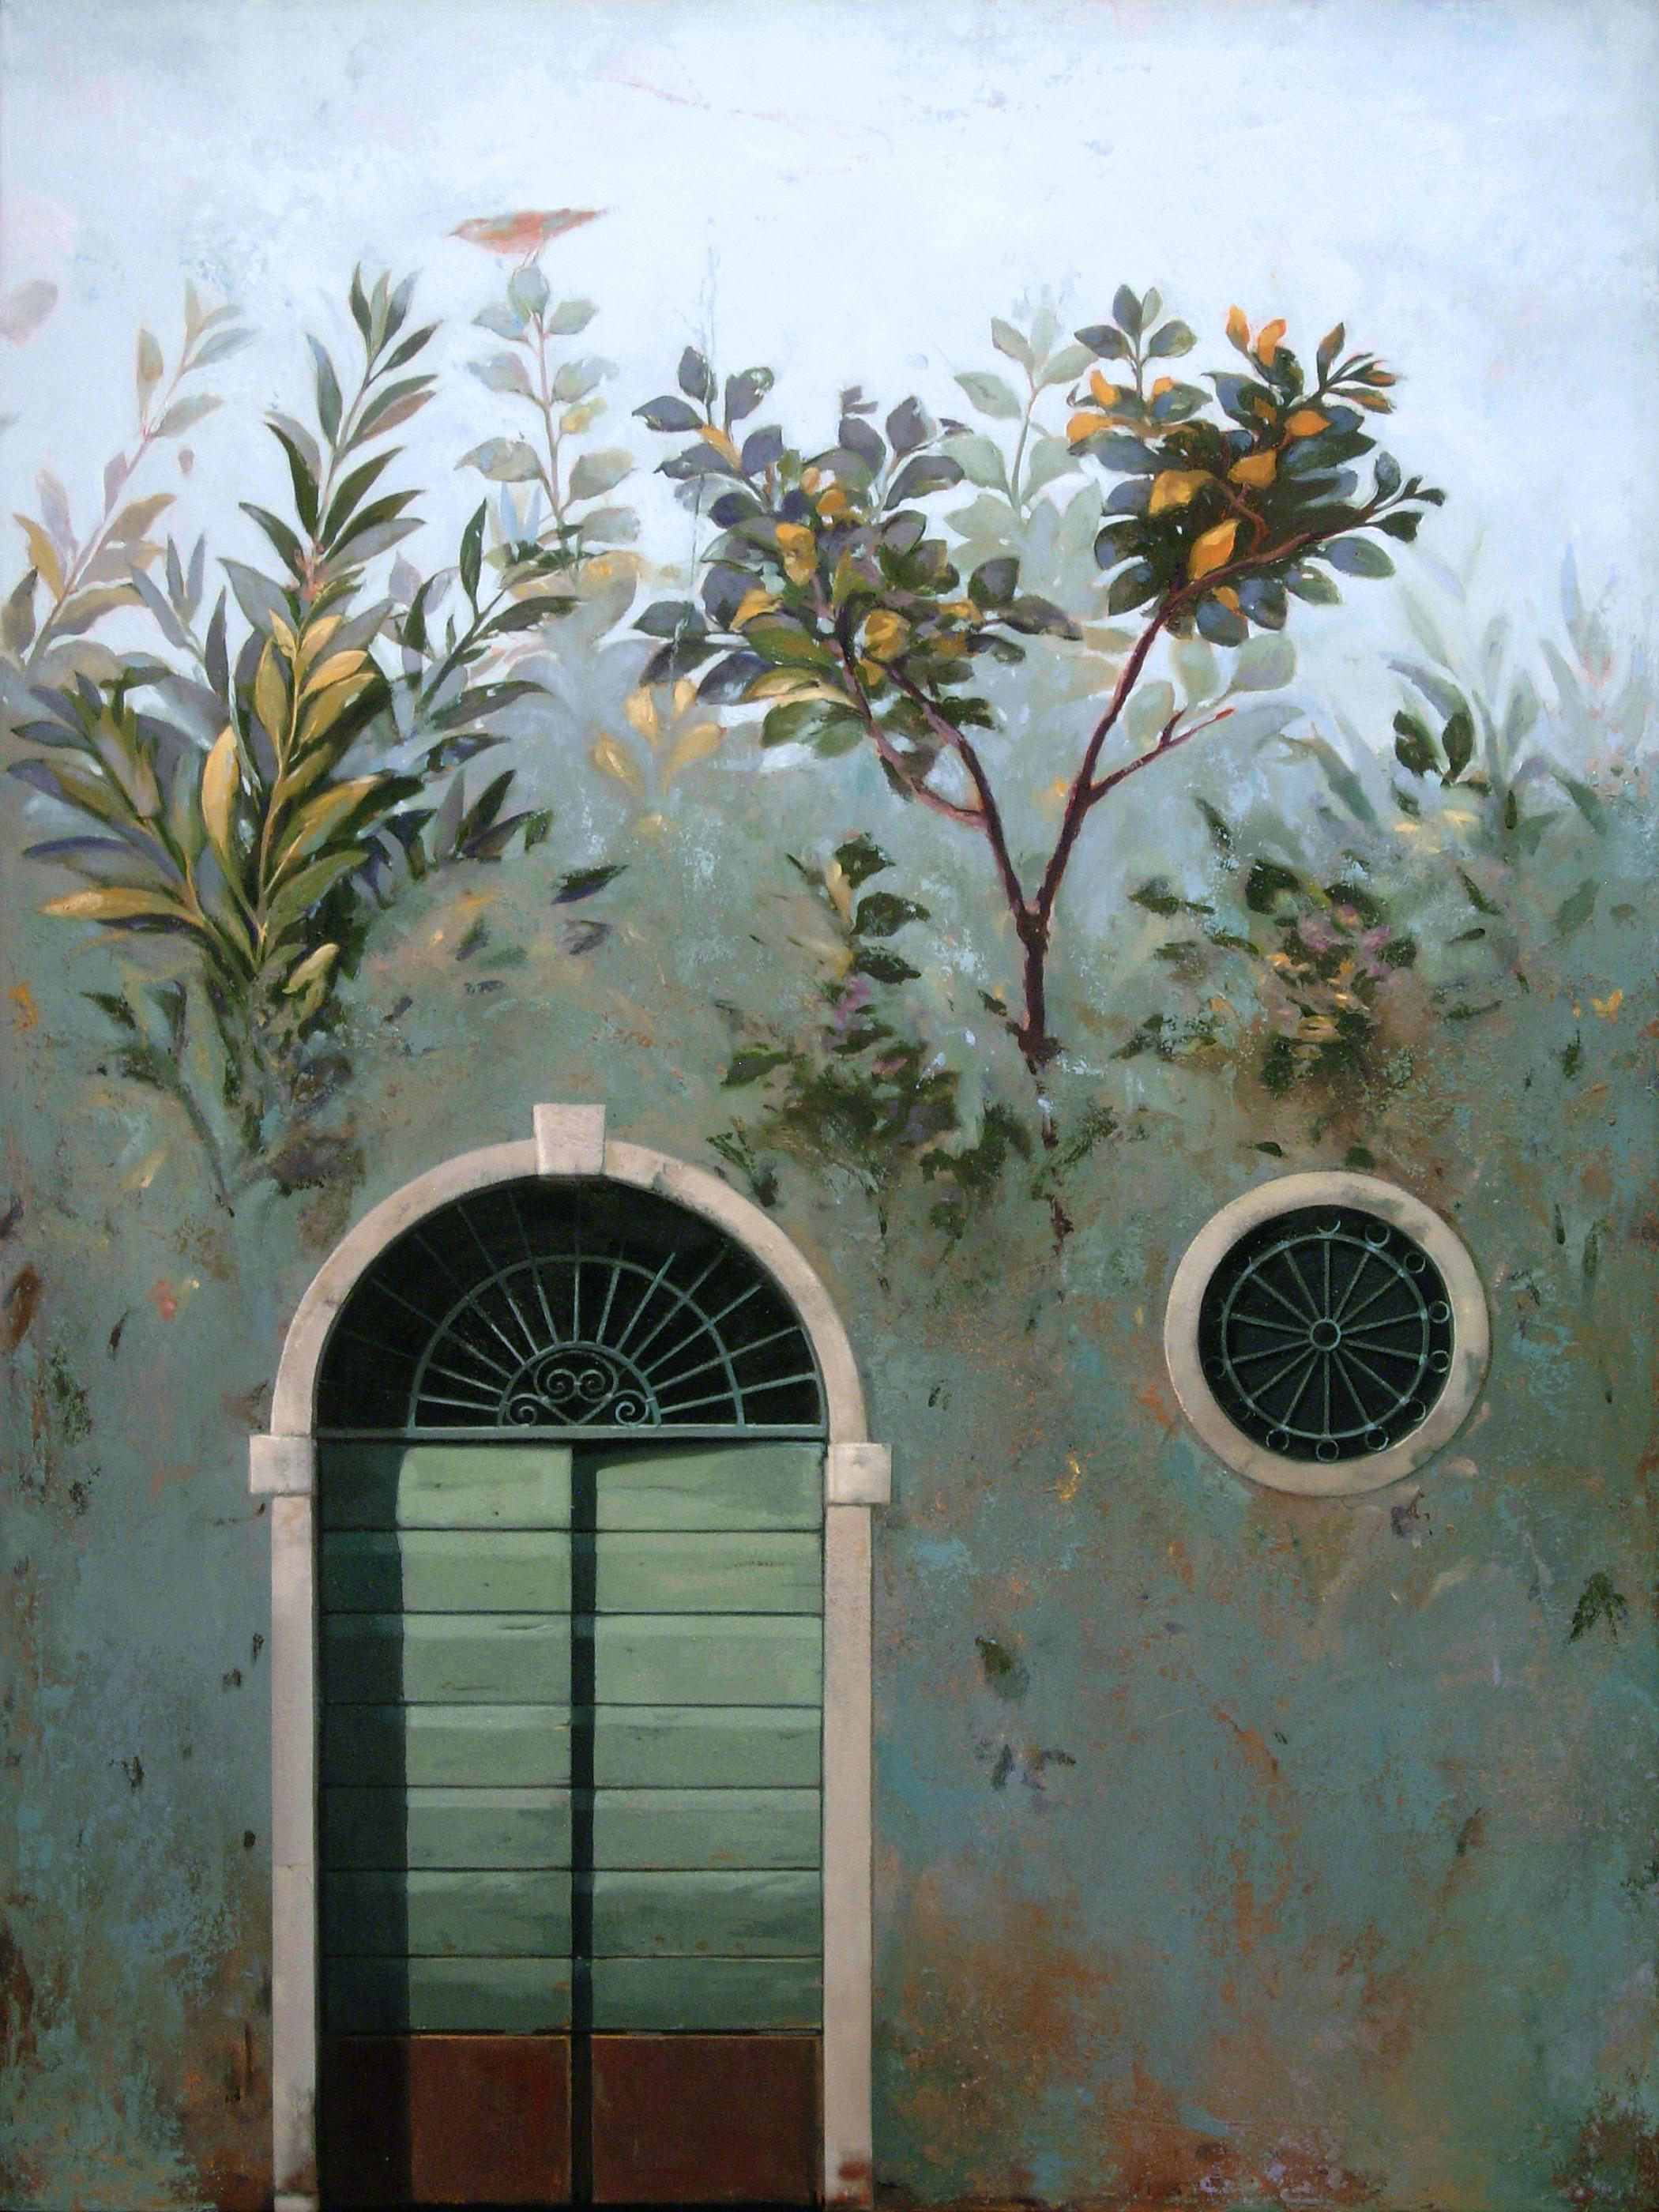 Ingresso - Architectural Trompe L'oeil Inspired by Ancient Roman Garden Frescos